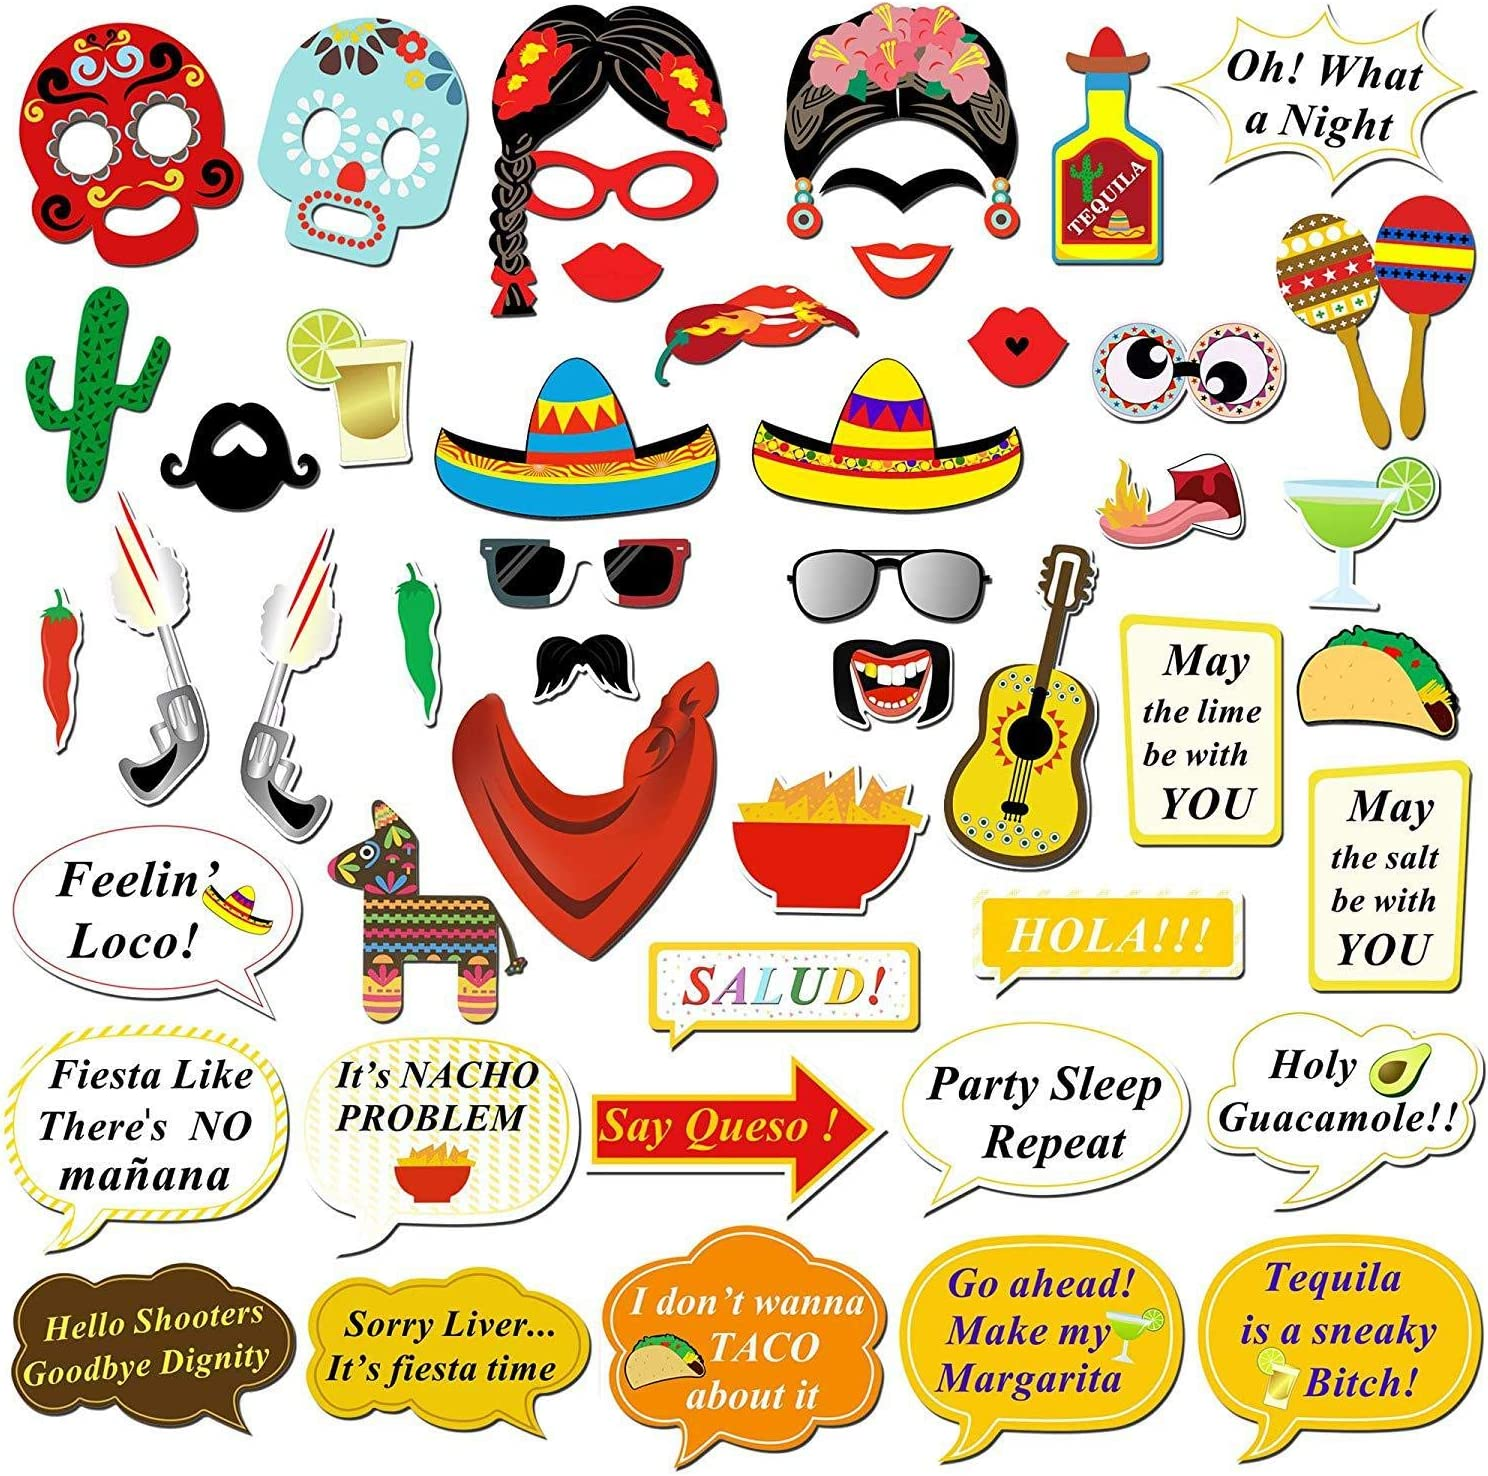 Kotbs 50 Pcs Mexican Fiesta Photo Booth Props Funny Photo Booth Selfie Props for Mexican Birthday Wedding Bachelorette Fiesta Themed Party Favors Supplies Decorations